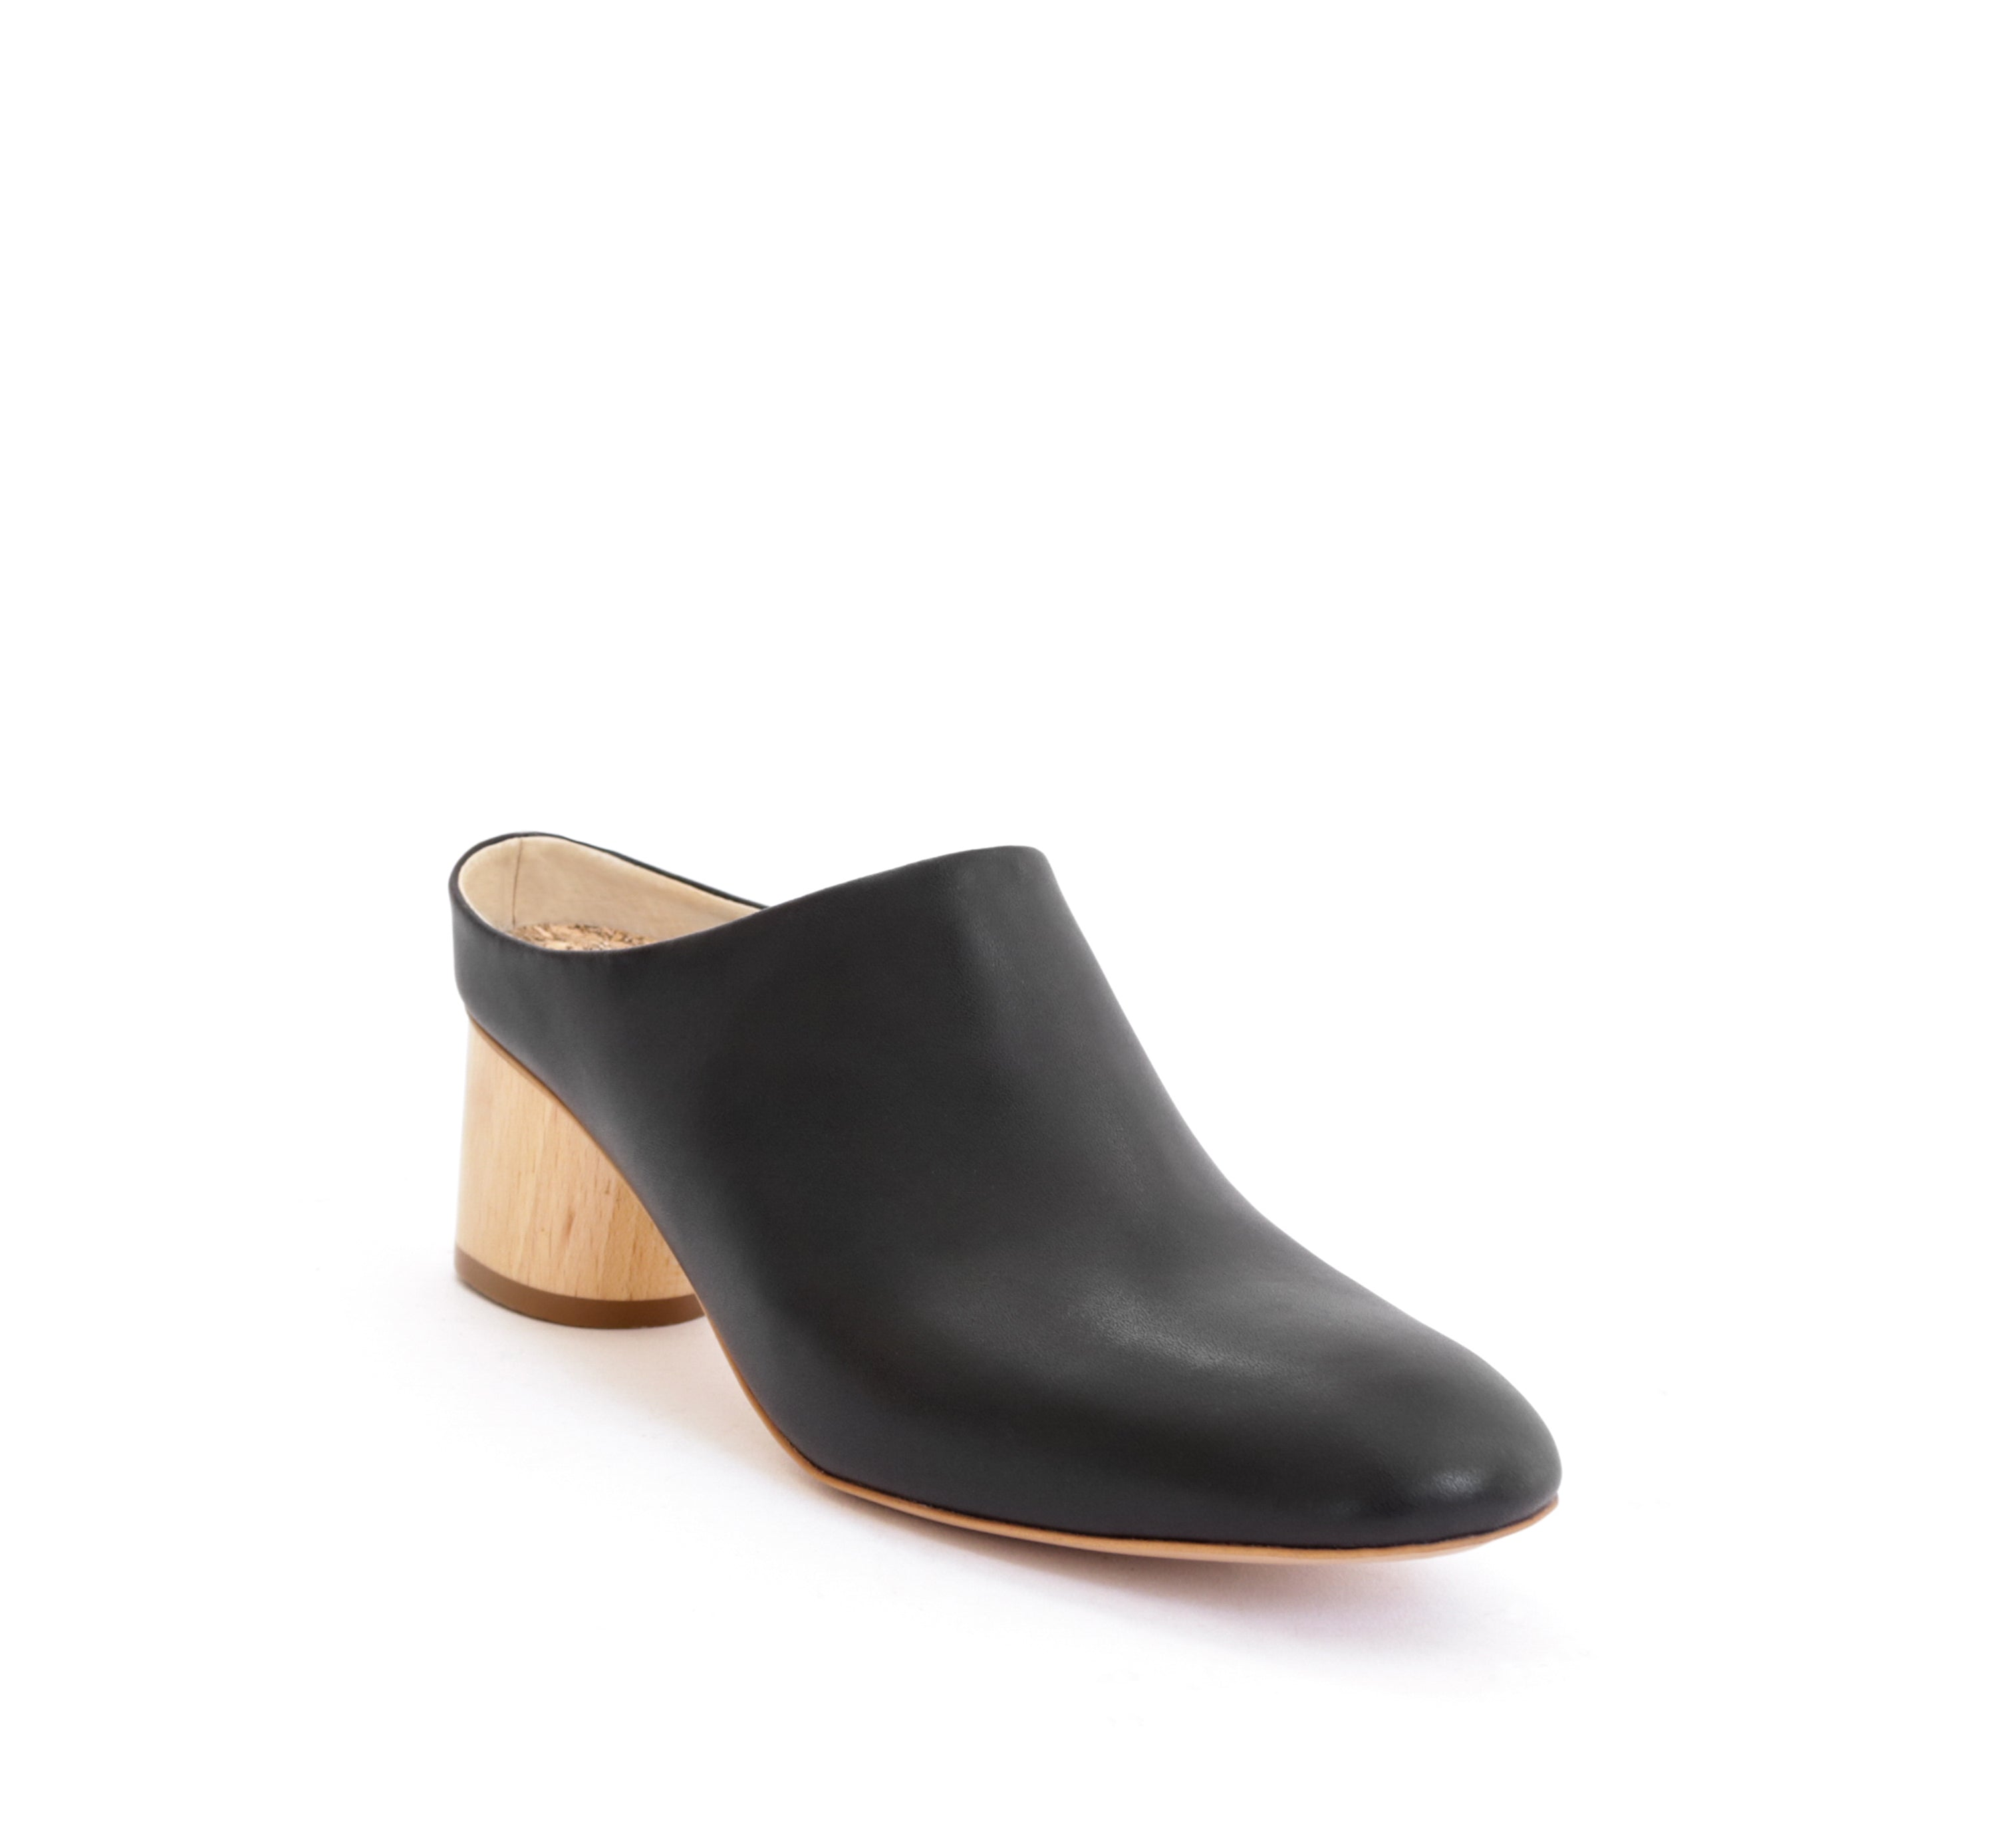 Low Mule Black Faux-Nappa. Vegan Luxe Ethical Footwear by Sydney Brown. Natural Sustainable Wood Heels. Animal Free. Cruelty-Free. Autumn Winter 2018. Handmade in Portugal